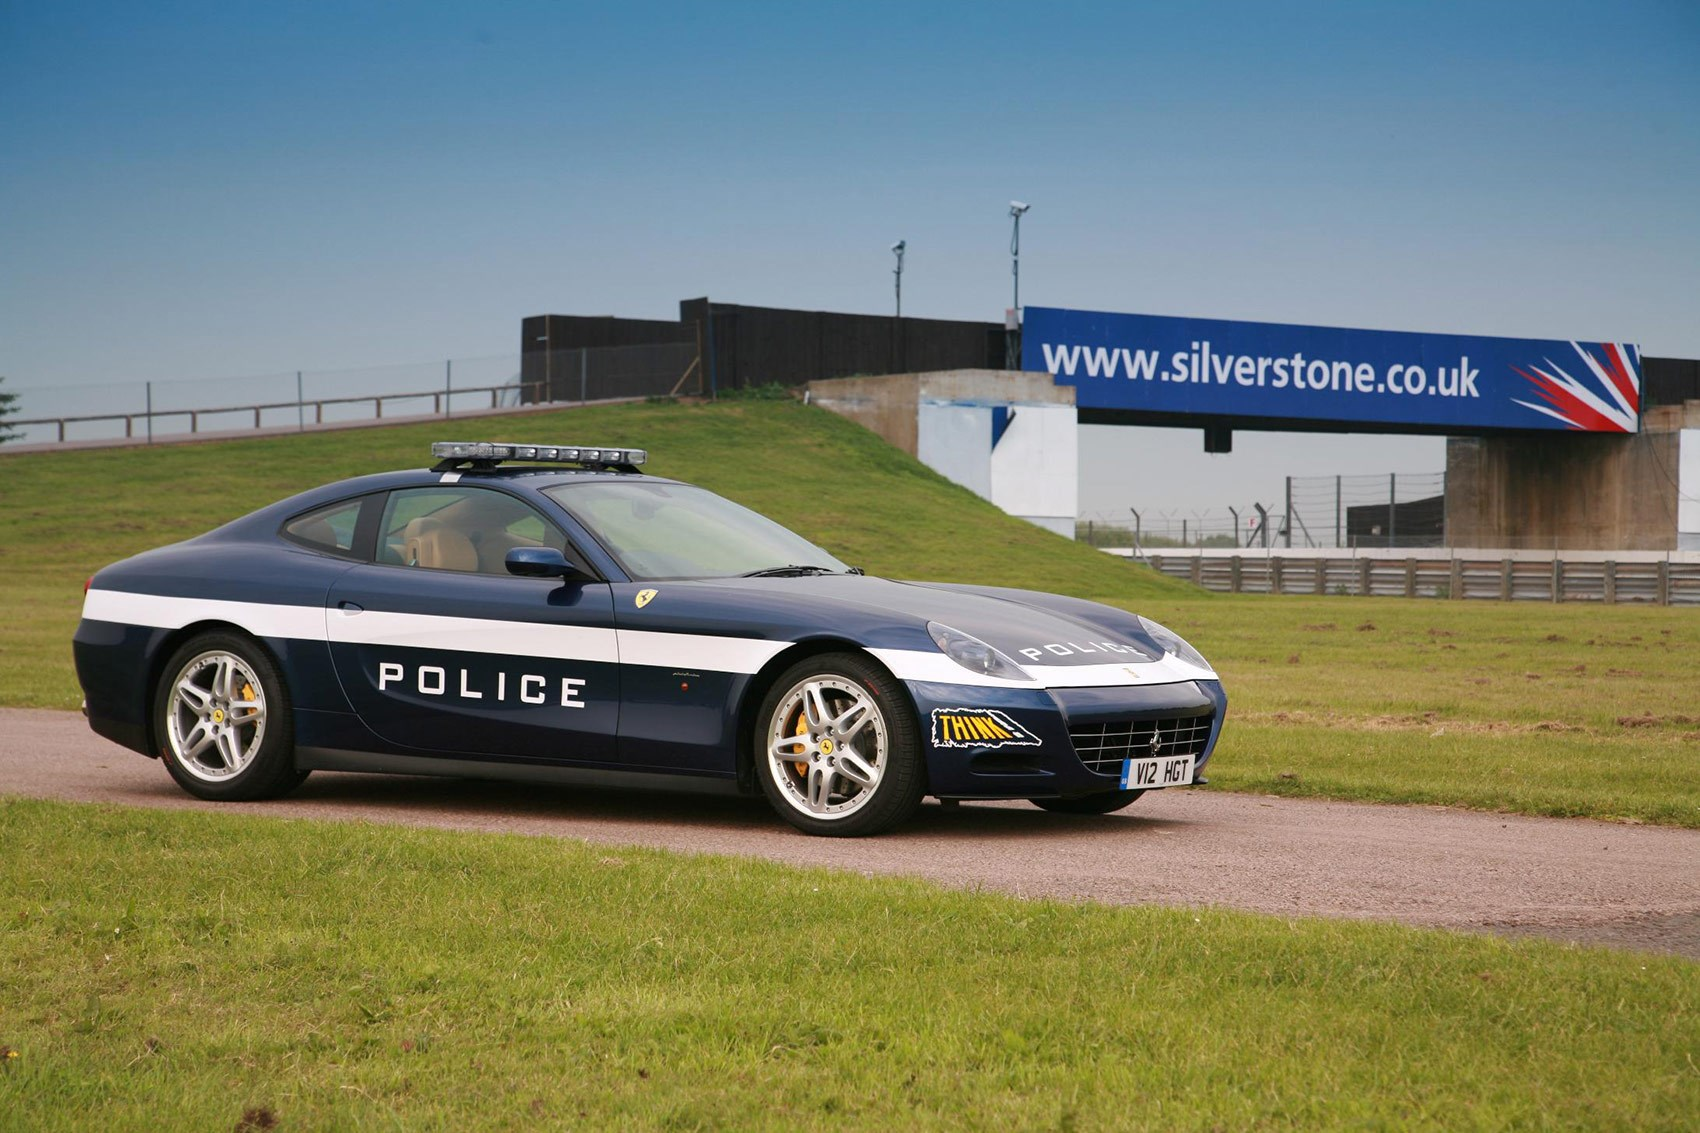 Cop Cars For Sale >> World S Best Police Cars Car Magazine